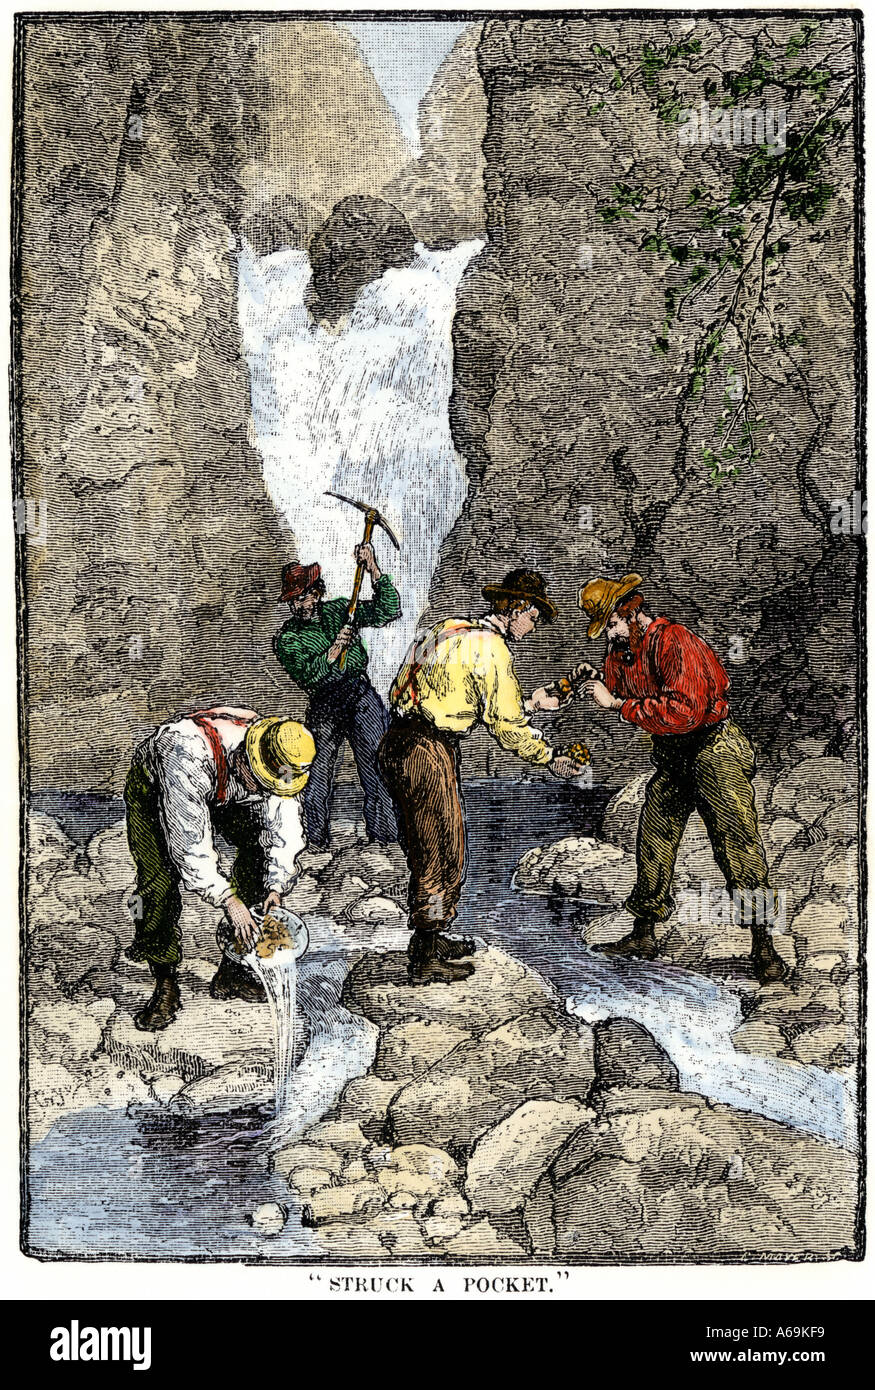 Prospectors finding gold in a Georgia stream 1800s. Hand-colored woodcut - Stock Image